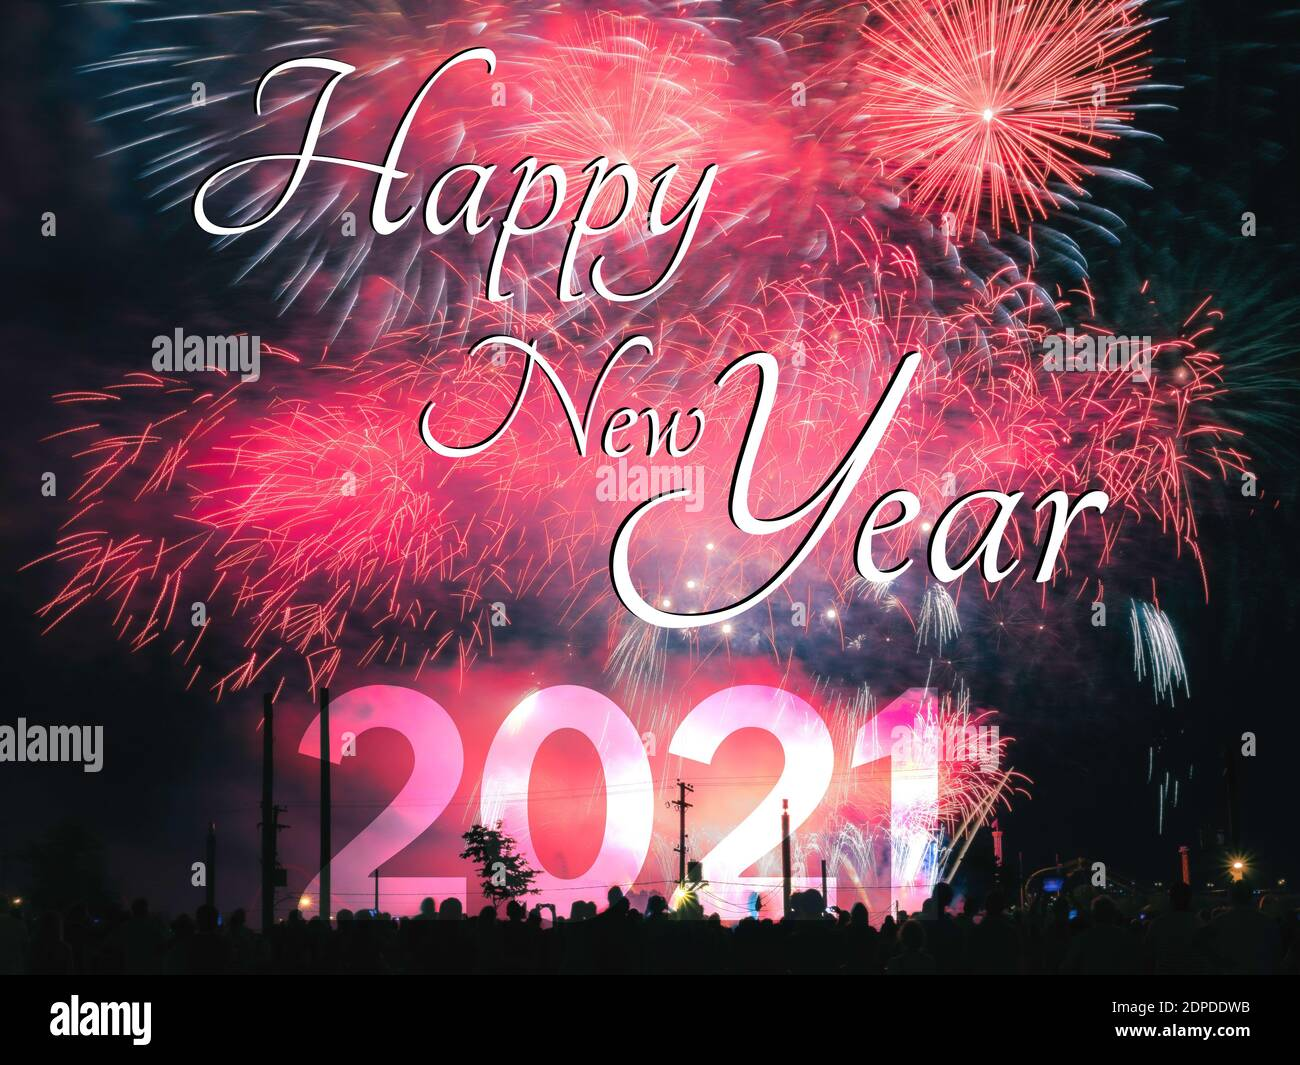 Happy New Year 2021 High Resolution Stock Photography And Images Alamy